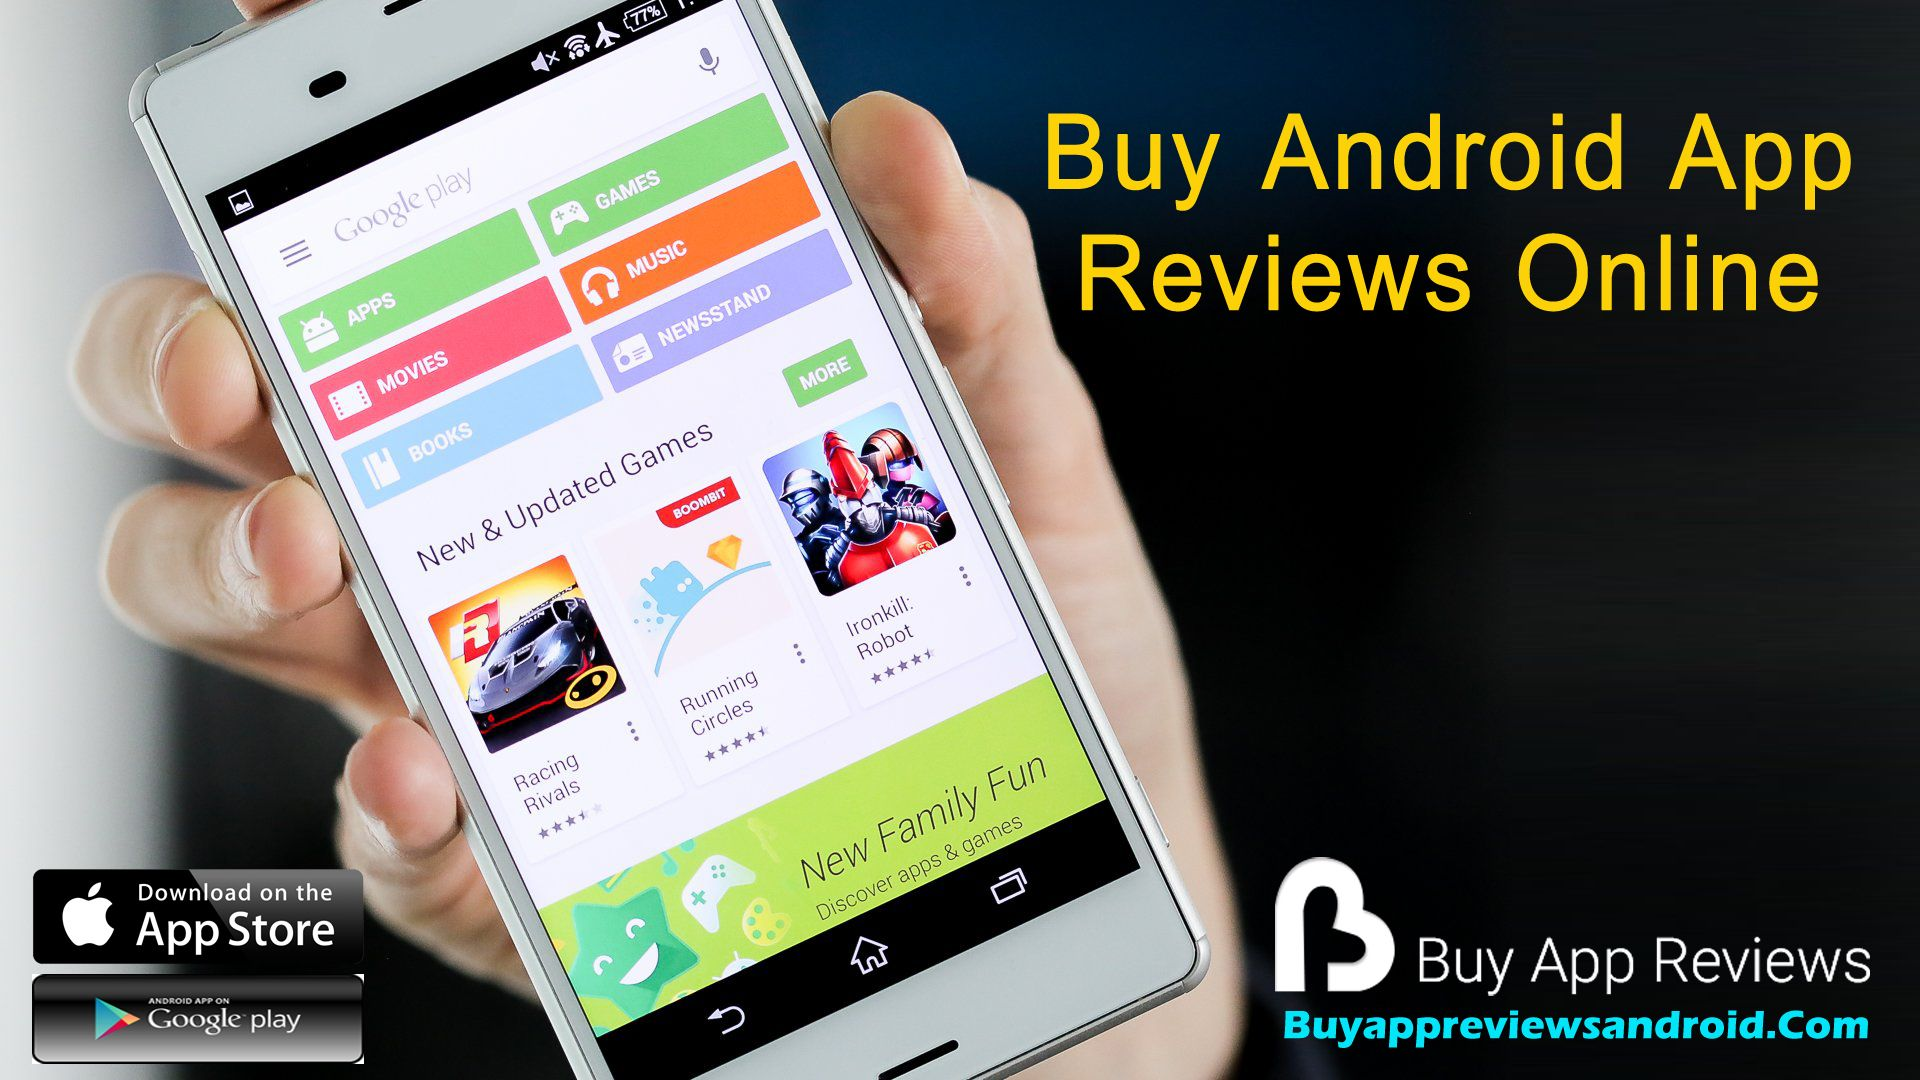 Buy app reviews for android to boost your ranking in the Google Play